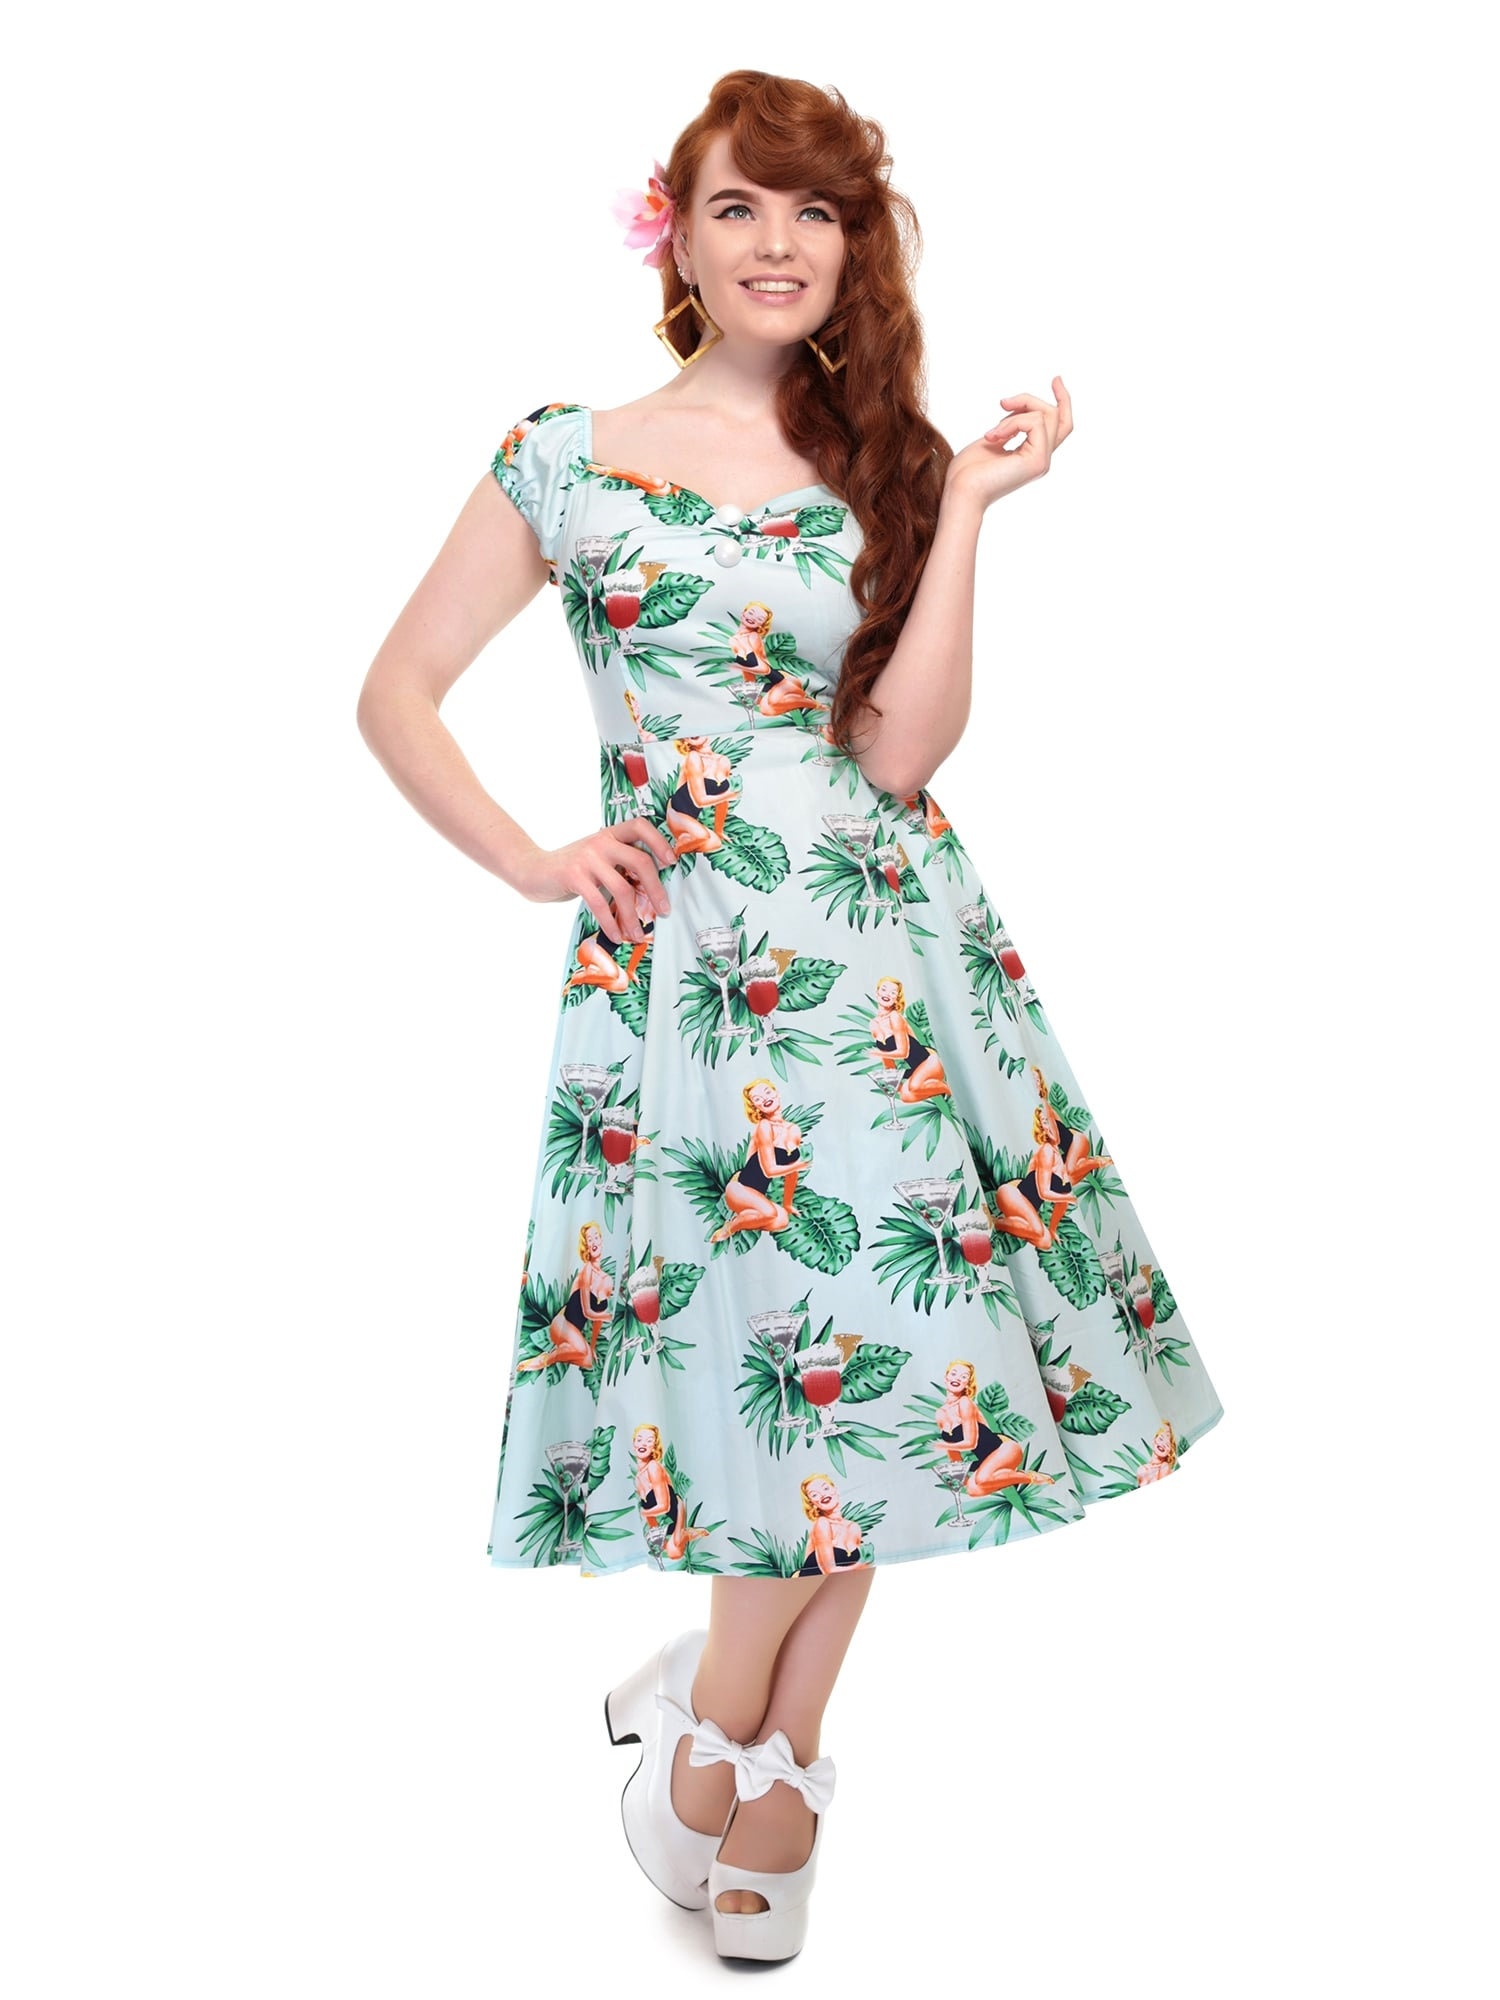 Dolores Tropical Pin-up Girl Doll Dress, Collectif Dress, 60er